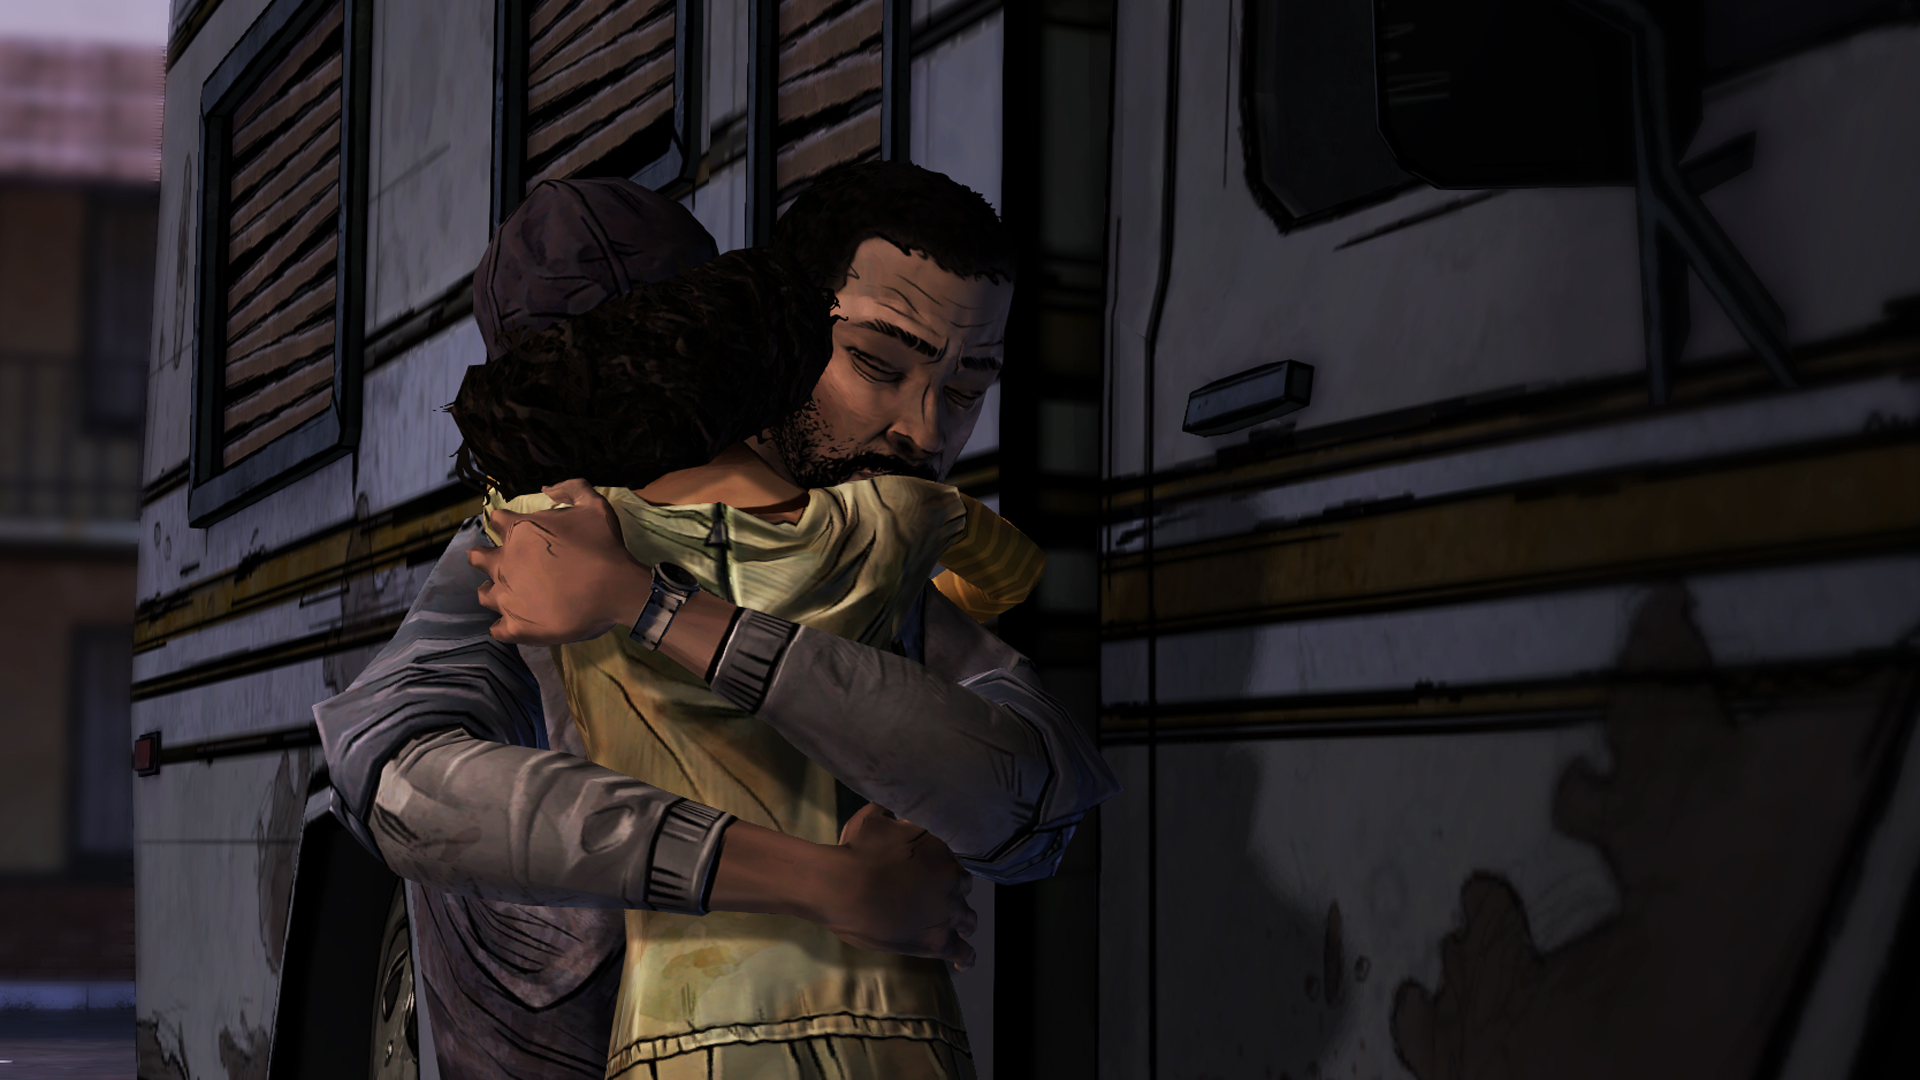 Free XBLA download of The Walking Dead to those with disc problems